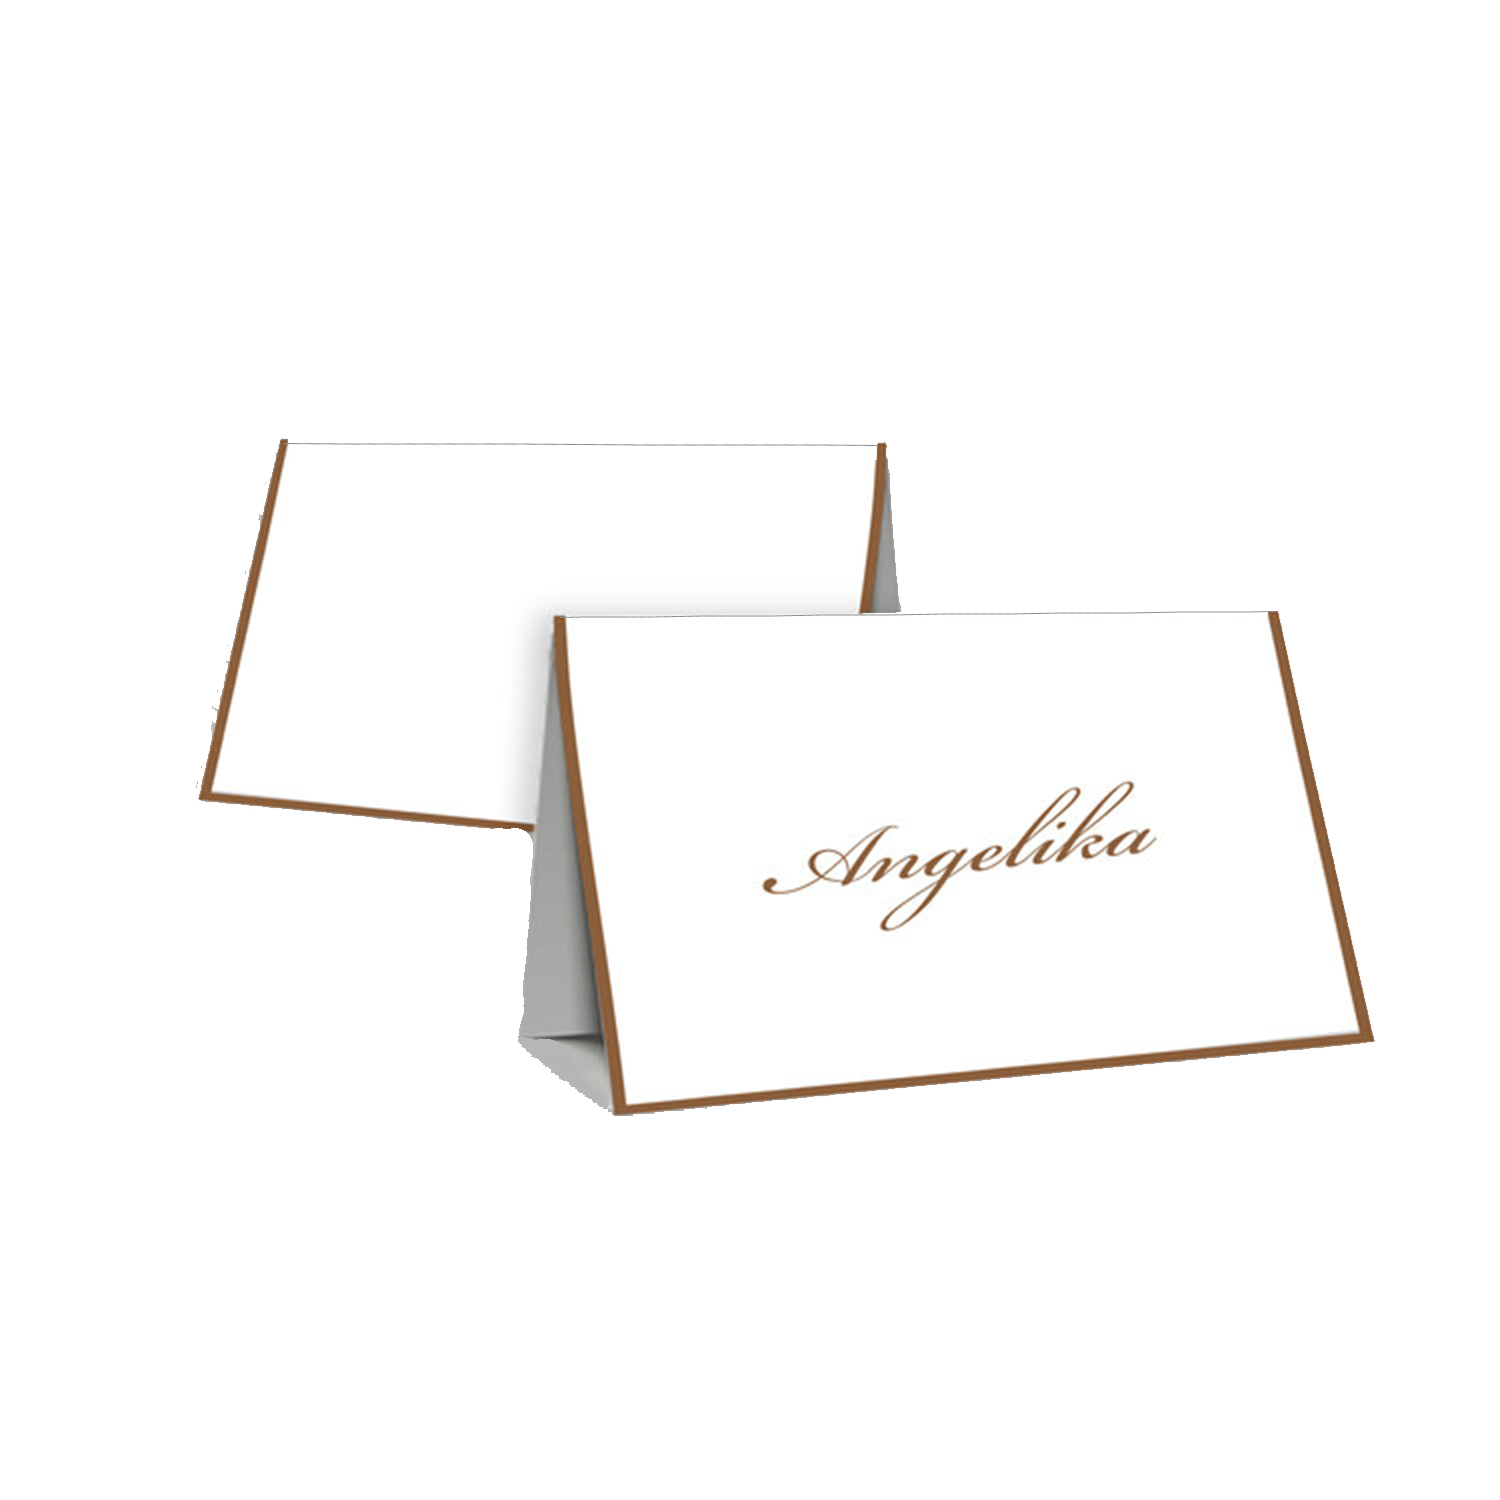 LAKAY name cards white background.jpg